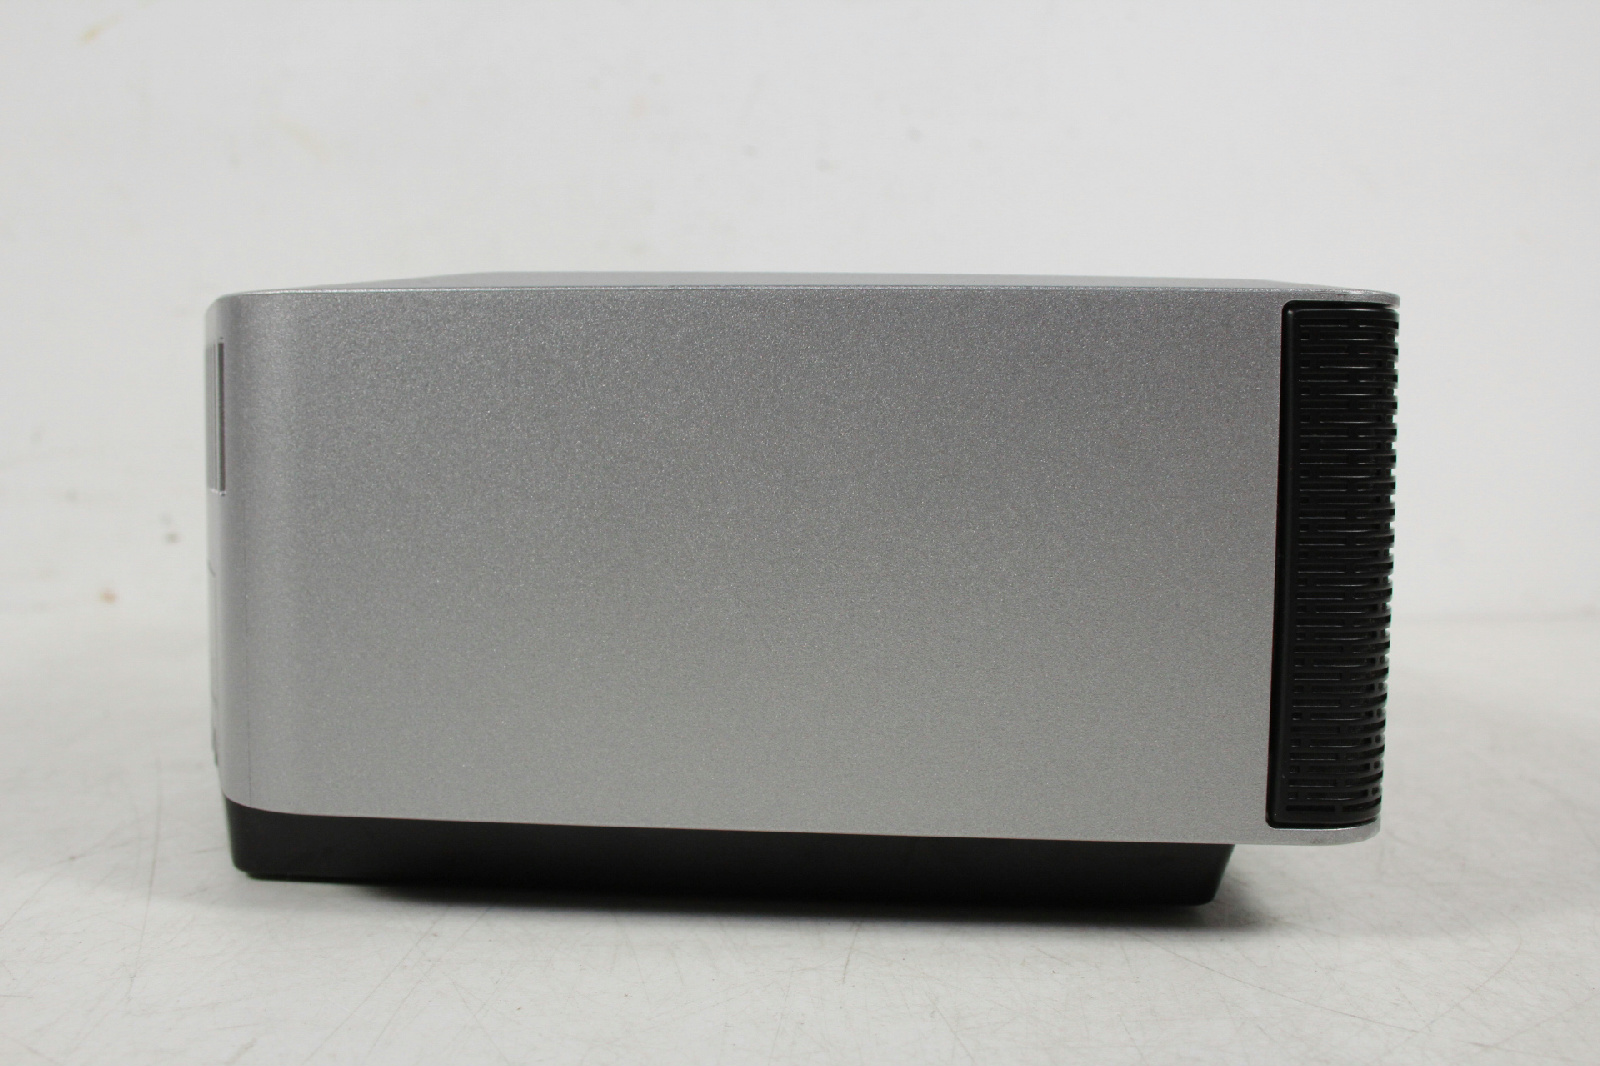 bose wave radio iv am fm alarm clock for parts or repair can power on. Black Bedroom Furniture Sets. Home Design Ideas